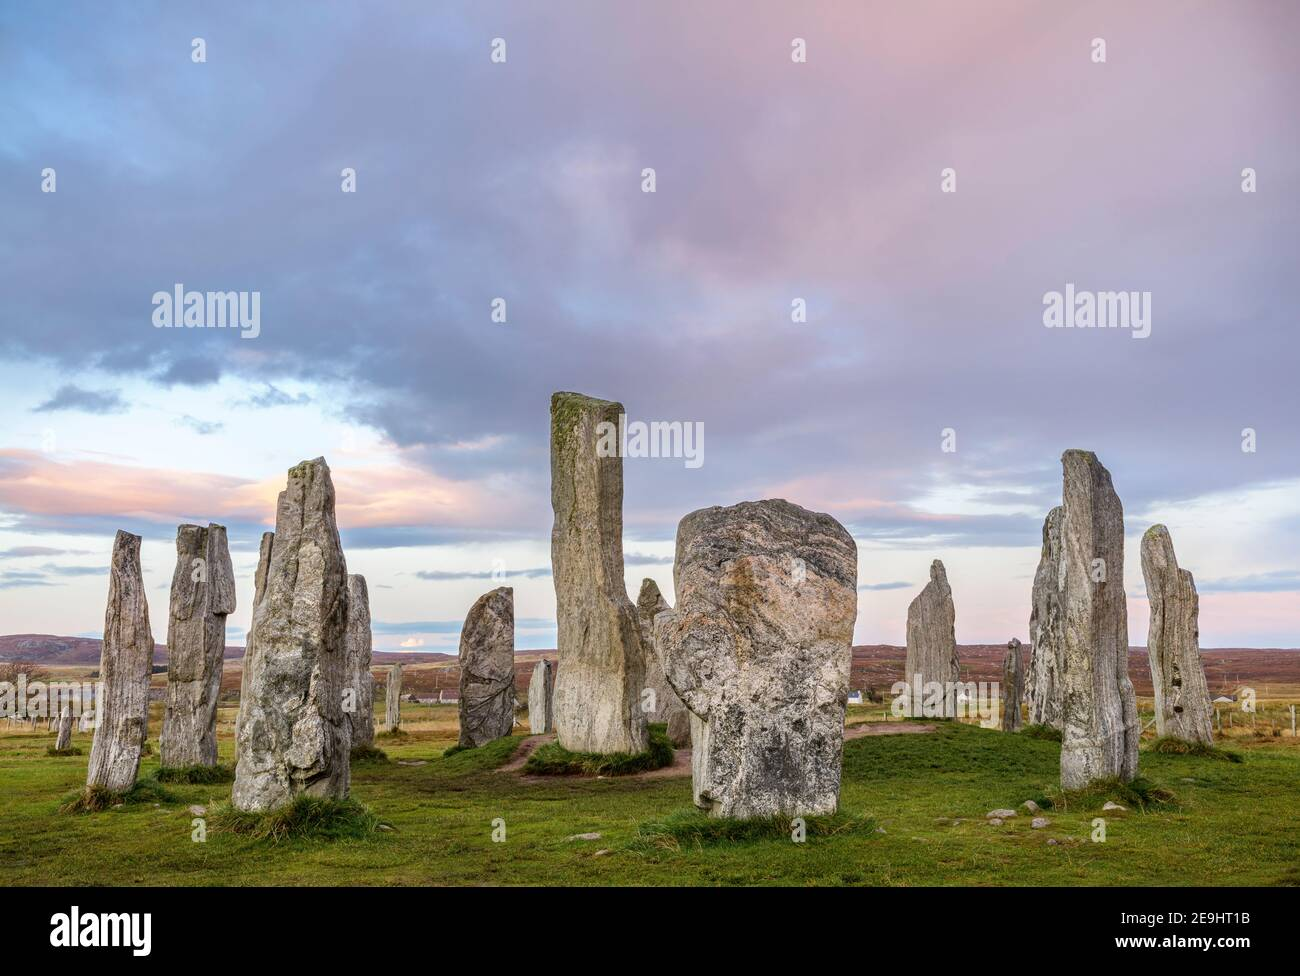 Isle of Lewis and Harris, Scotland: Sunset skies at the Callanish Standing Stones Stock Photo